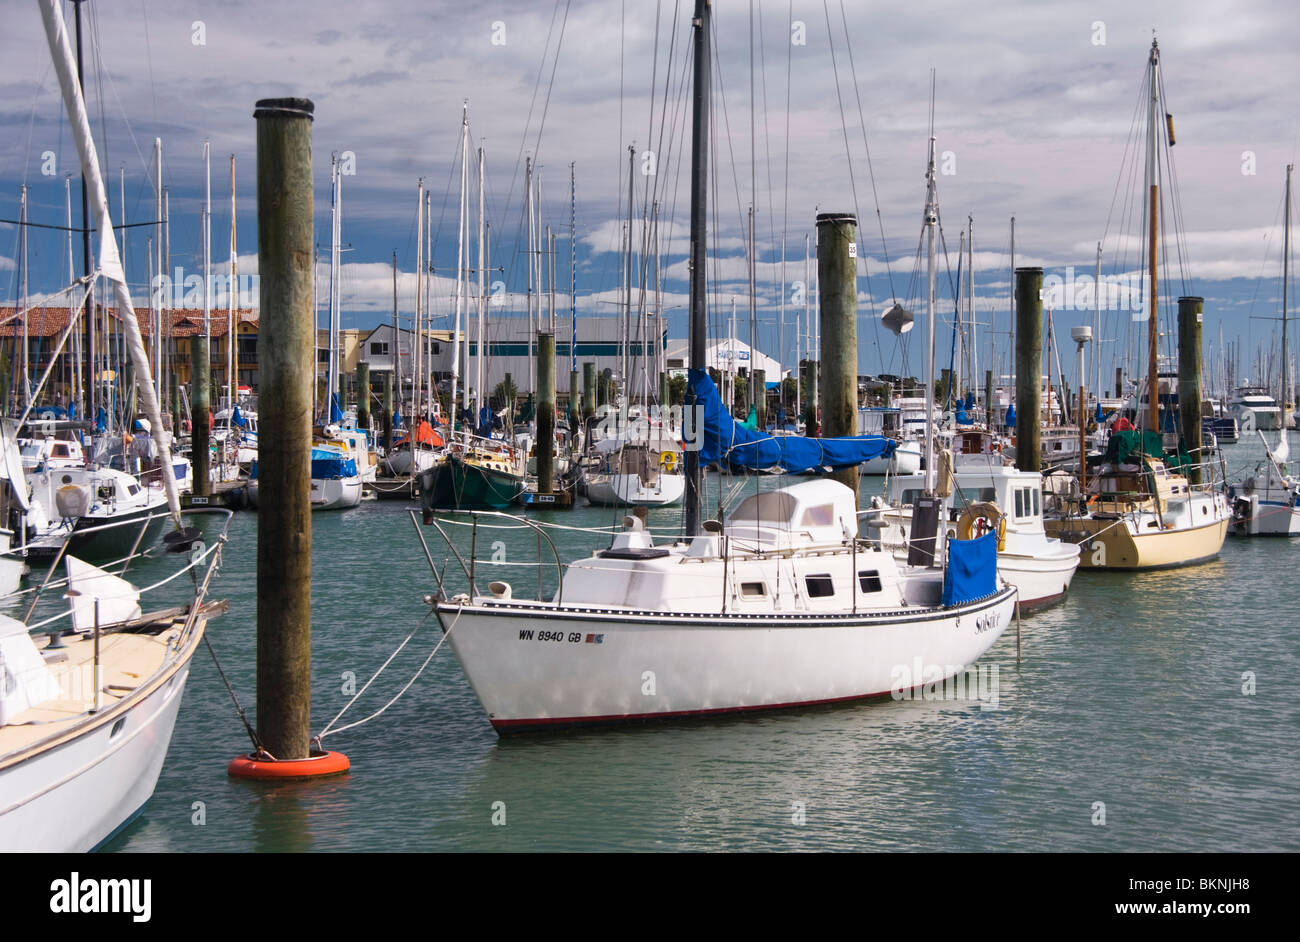 Yachts and motor launches moored in a marina, Nelson, New Zealand - Stock Image